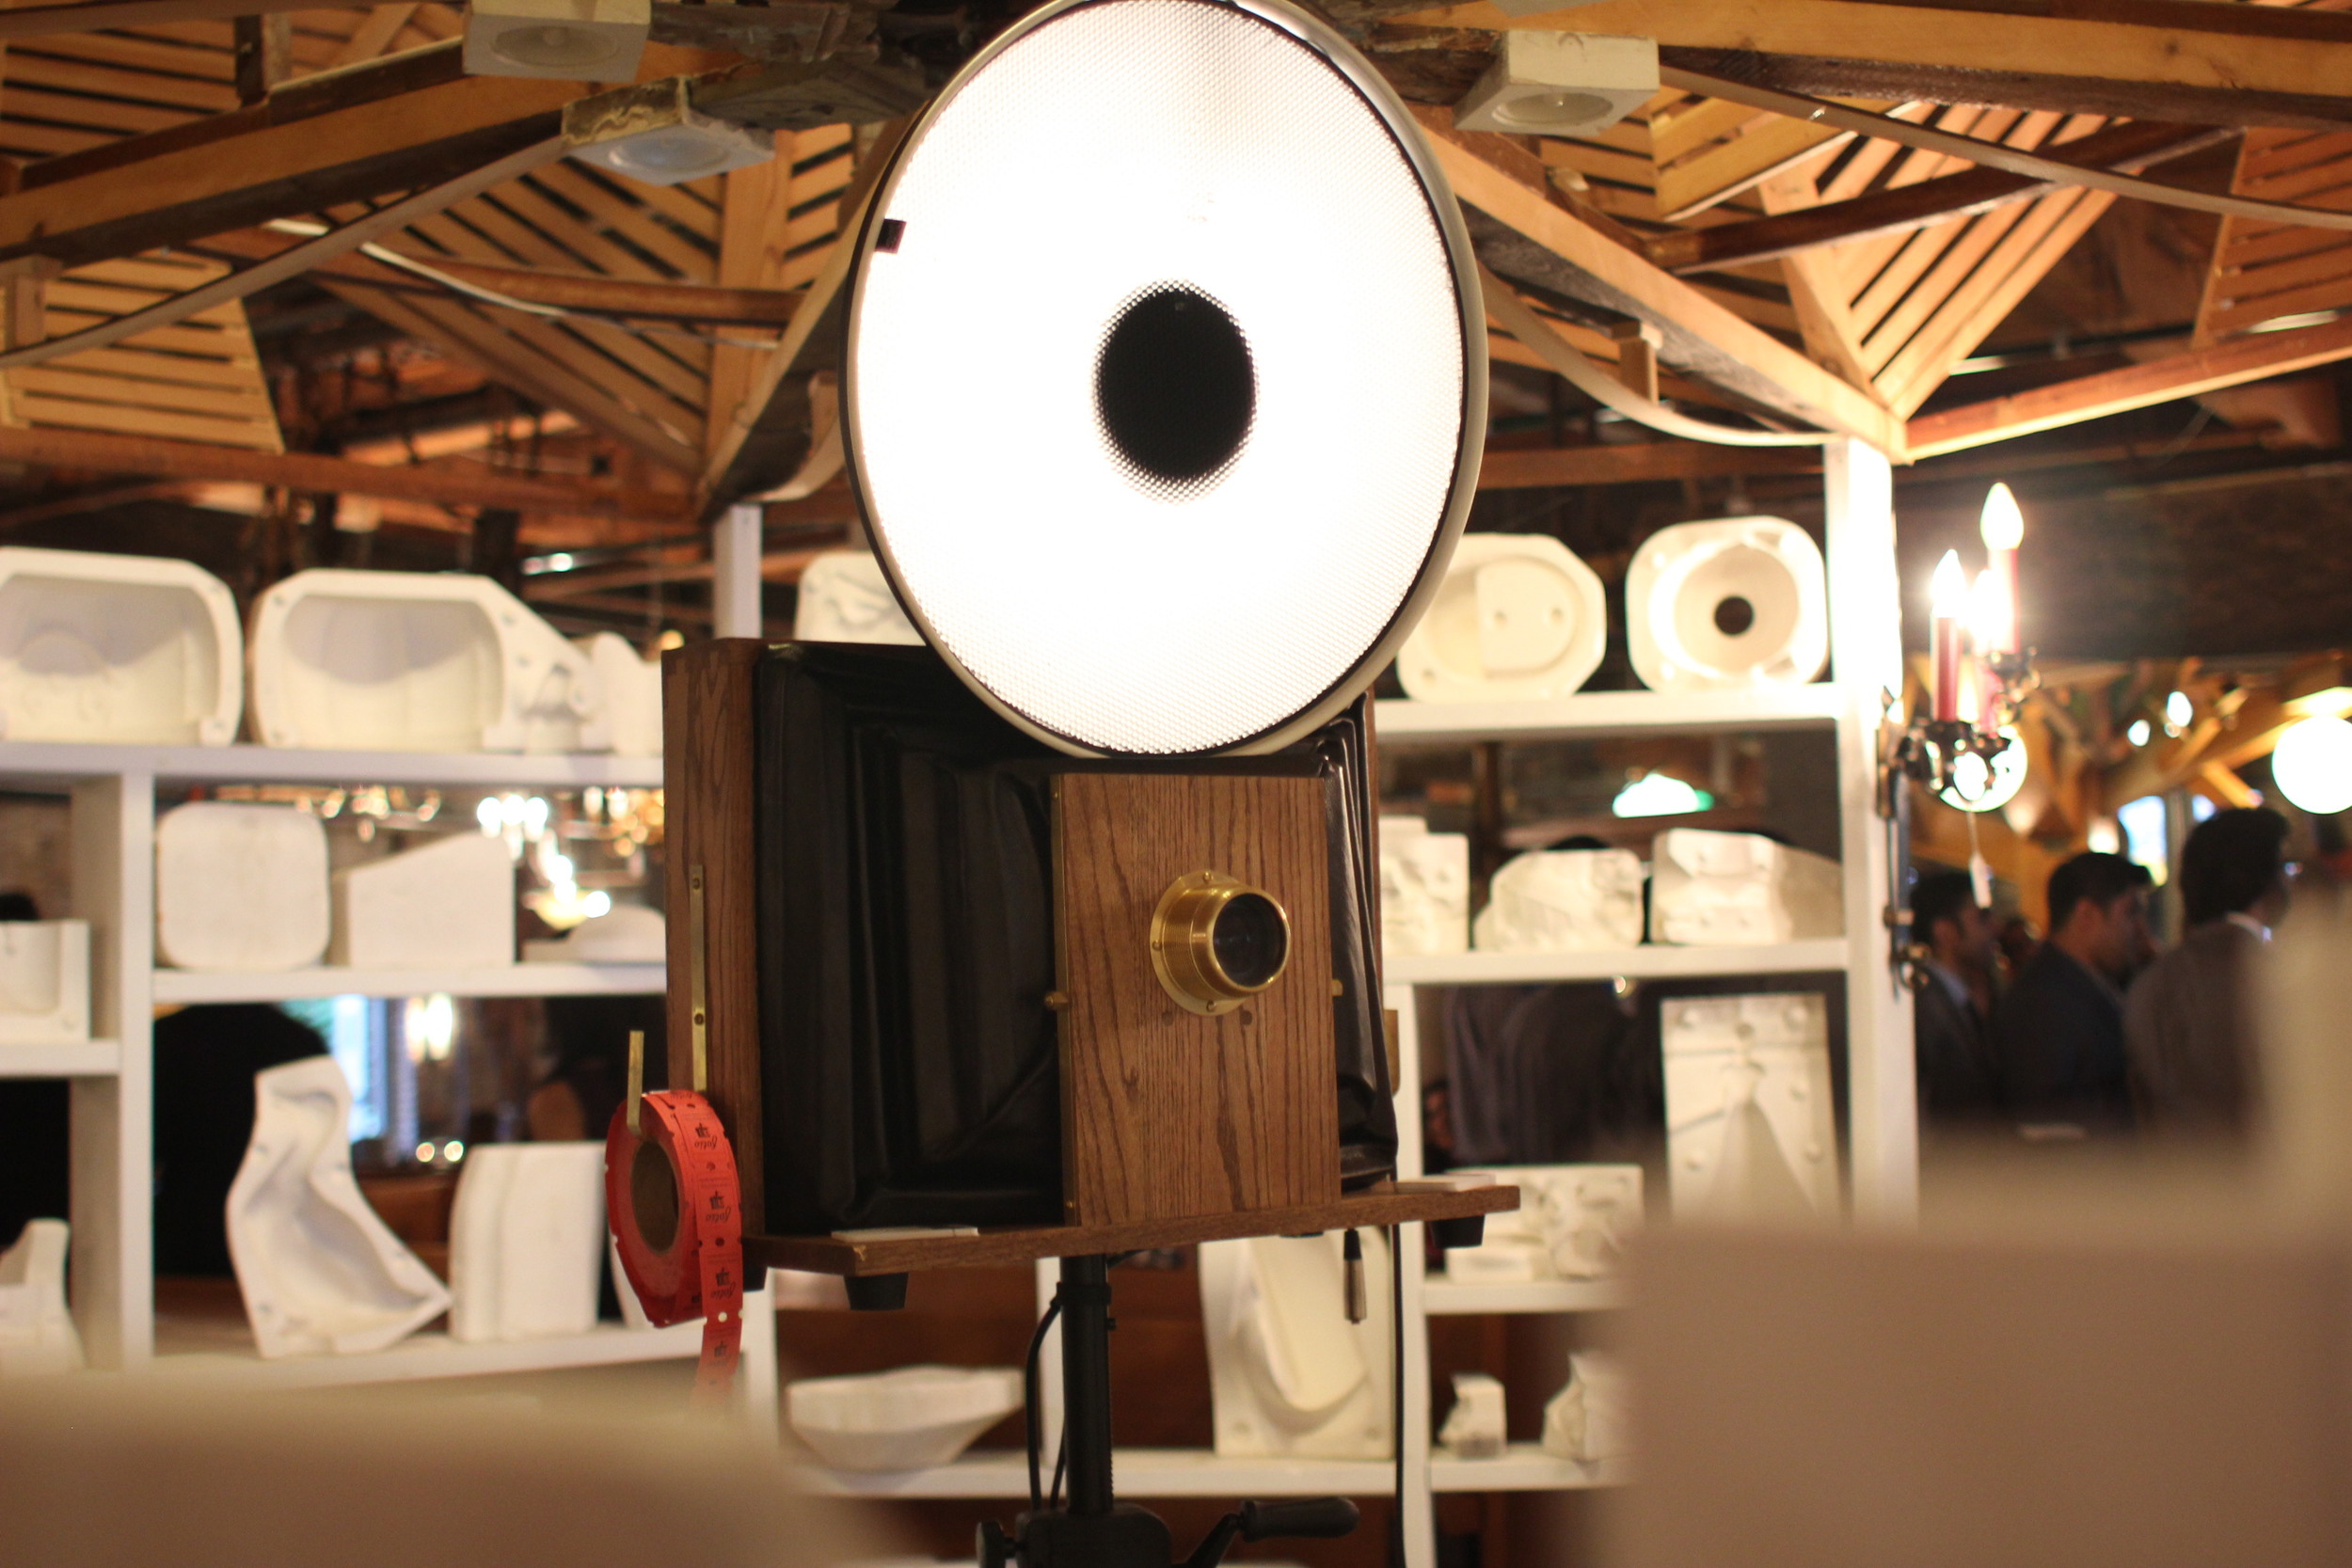 A Fotio photo booth setup at Salvage One in the Mold Igloo!